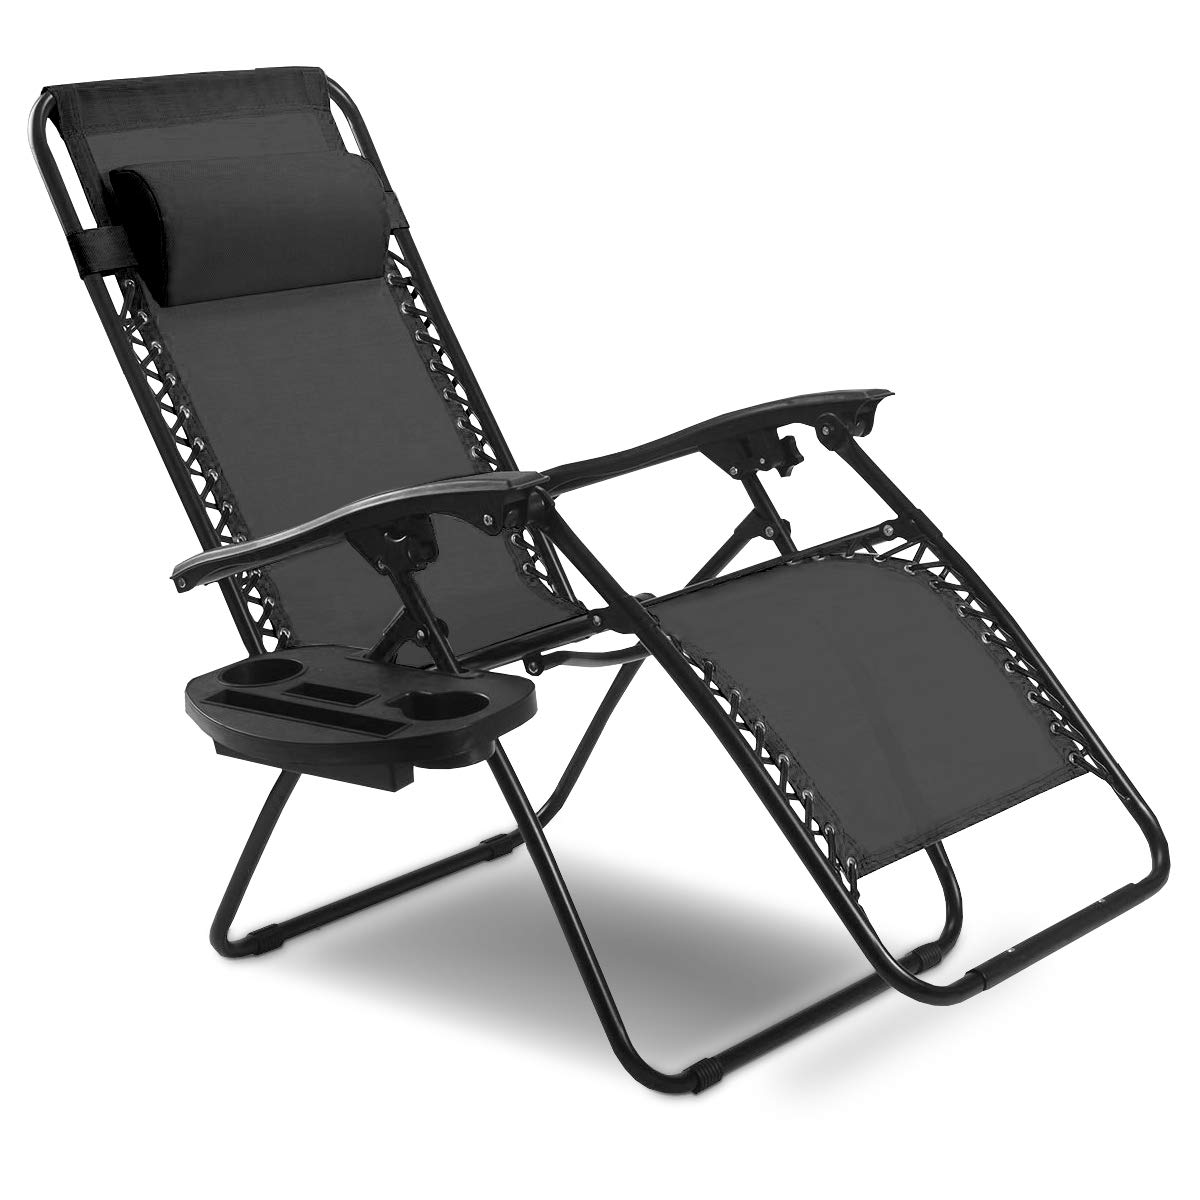 Goplus Folding Zero Gravity Reclining Lounge Chairs Outdoor Beach Patio W Utility Tray Black